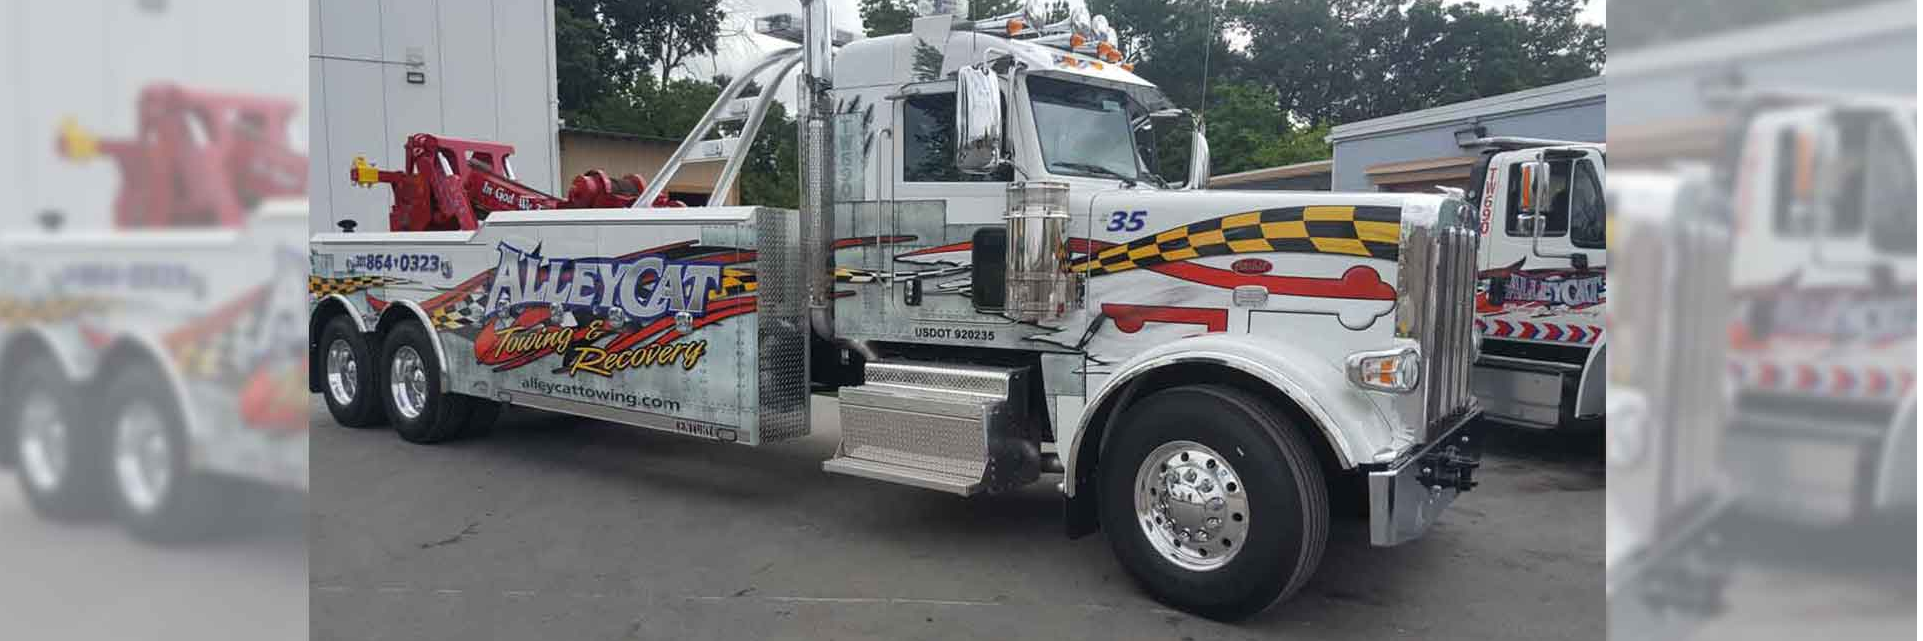 AlleyCat Towing & Recovery, Inc. Towing.com Profile Banner